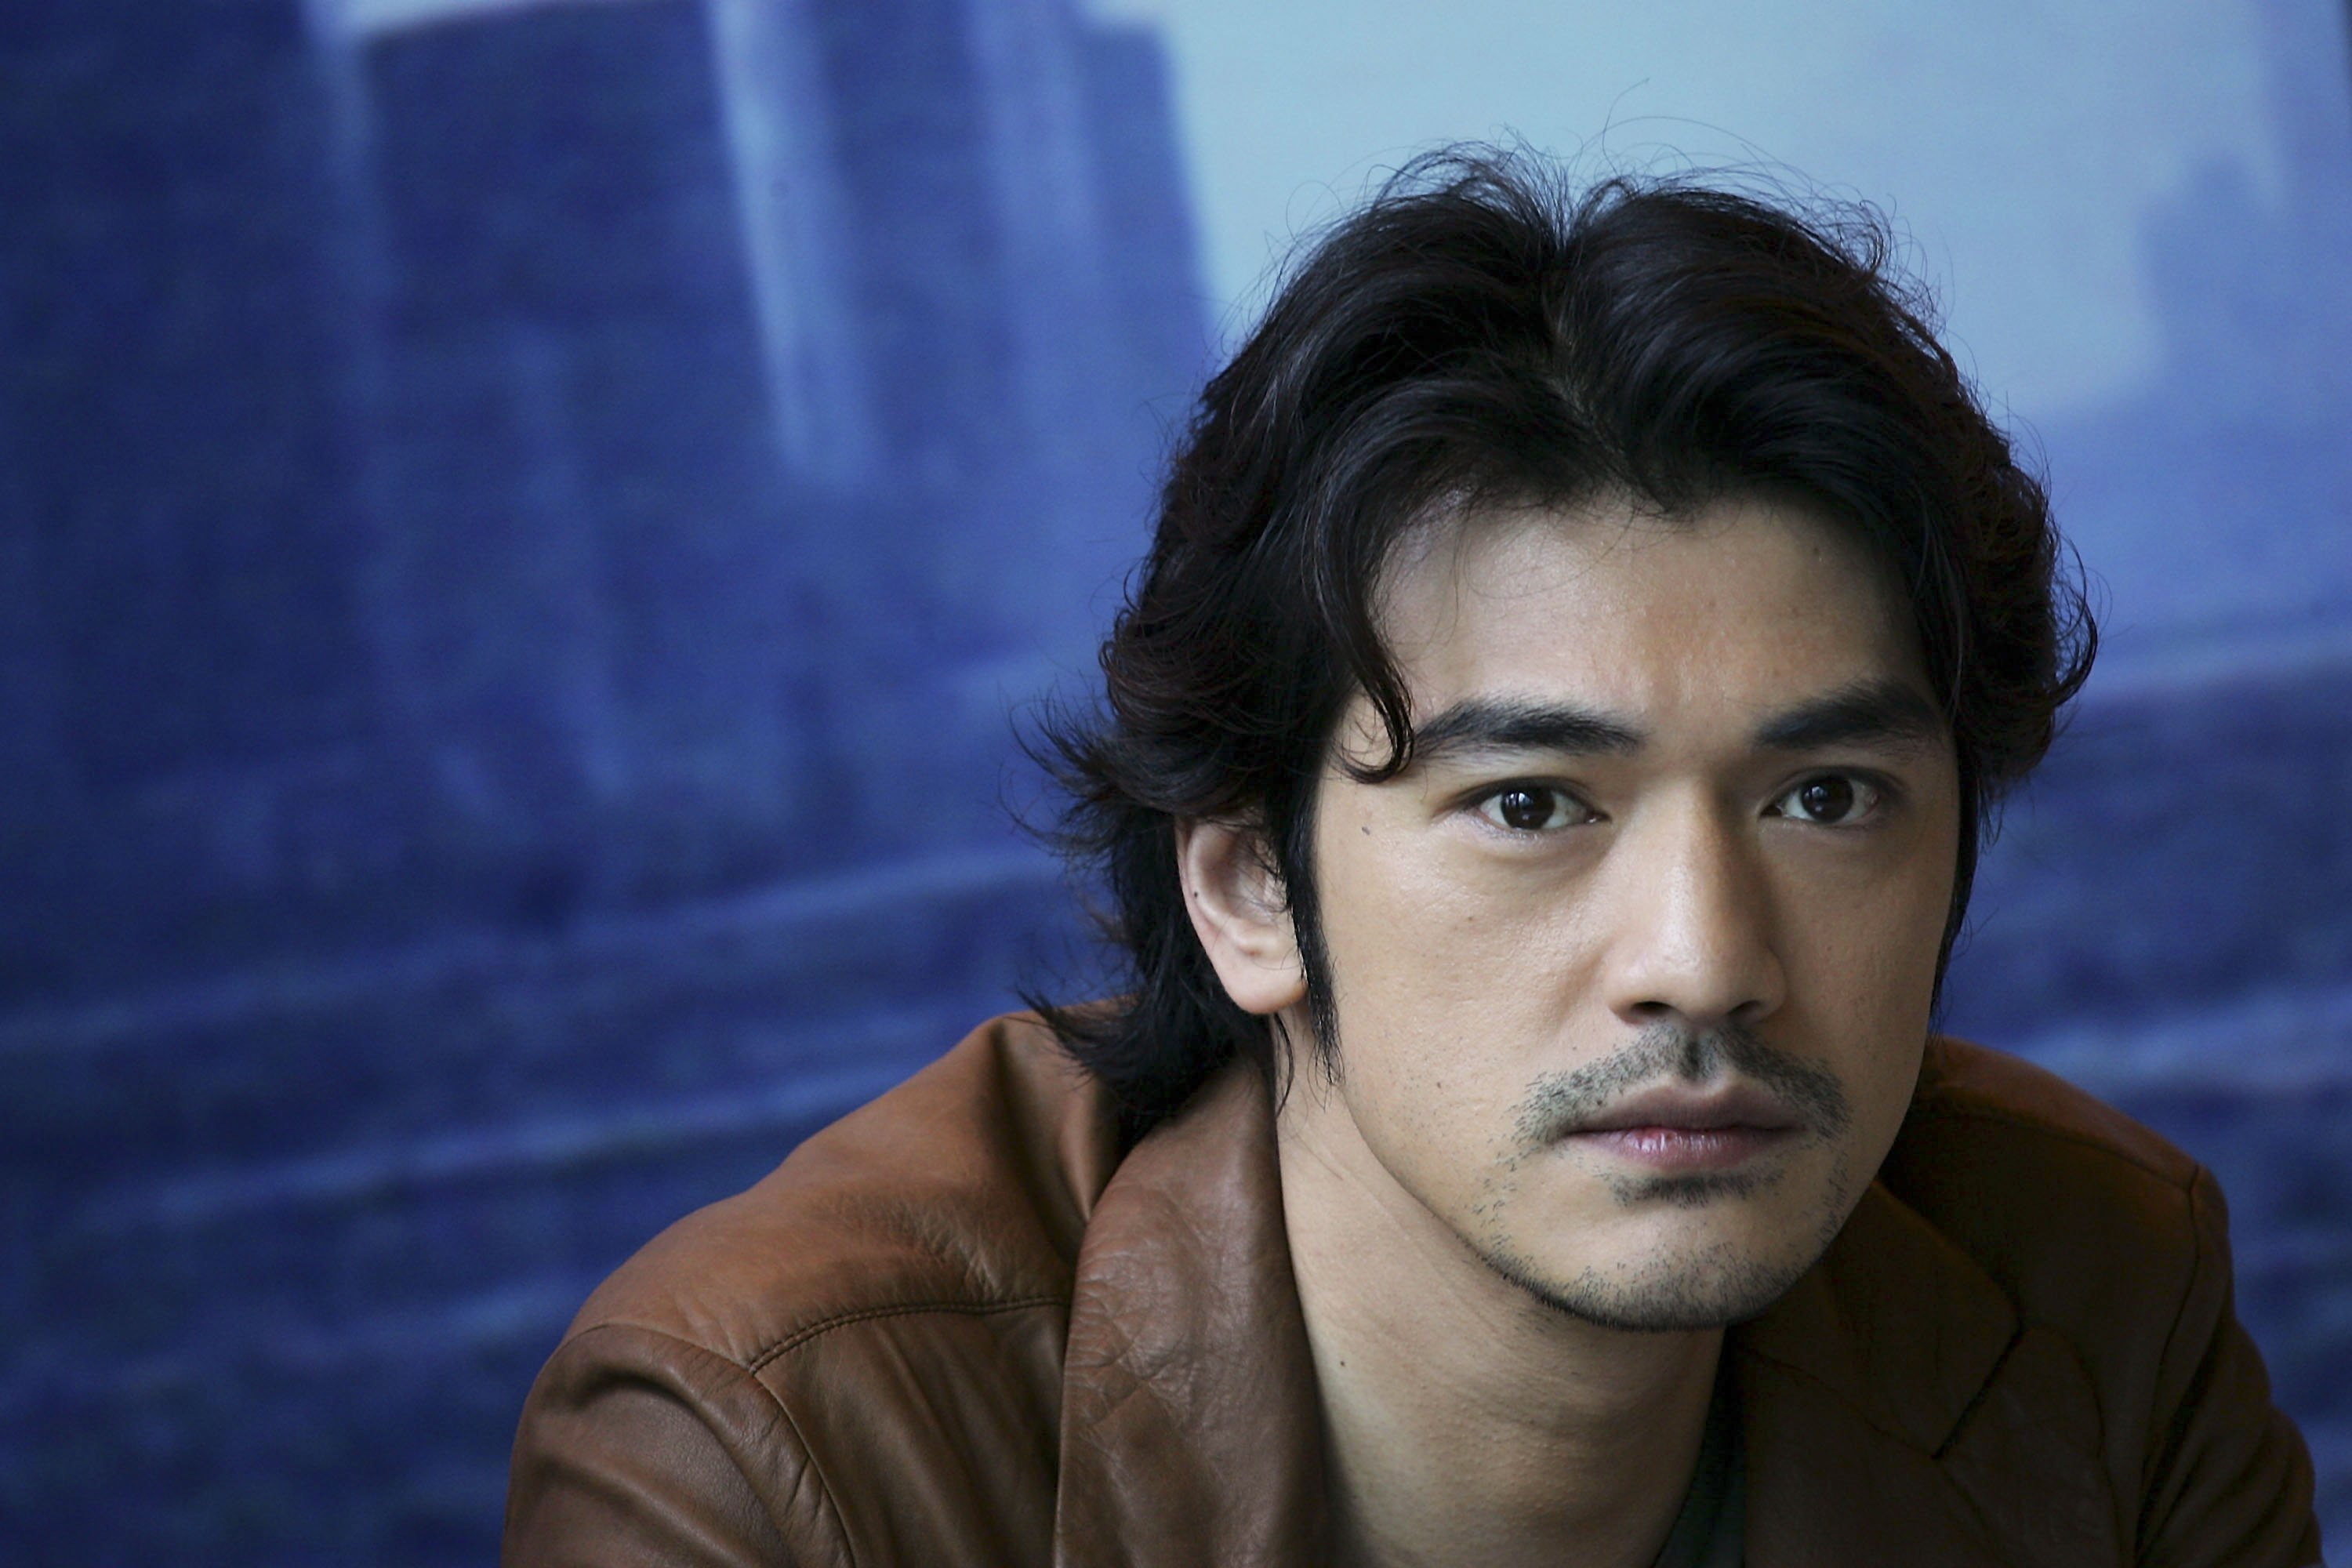 """HONG KONG - JULY 09:  Movie star Takeshi Kaneshiro attends a press conference and photocall to promote the new movie titled """"Confession of Pain"""" on July 9, 2006 in Hong Kong, China.  (Photo by MN Chan/Getty Images)"""